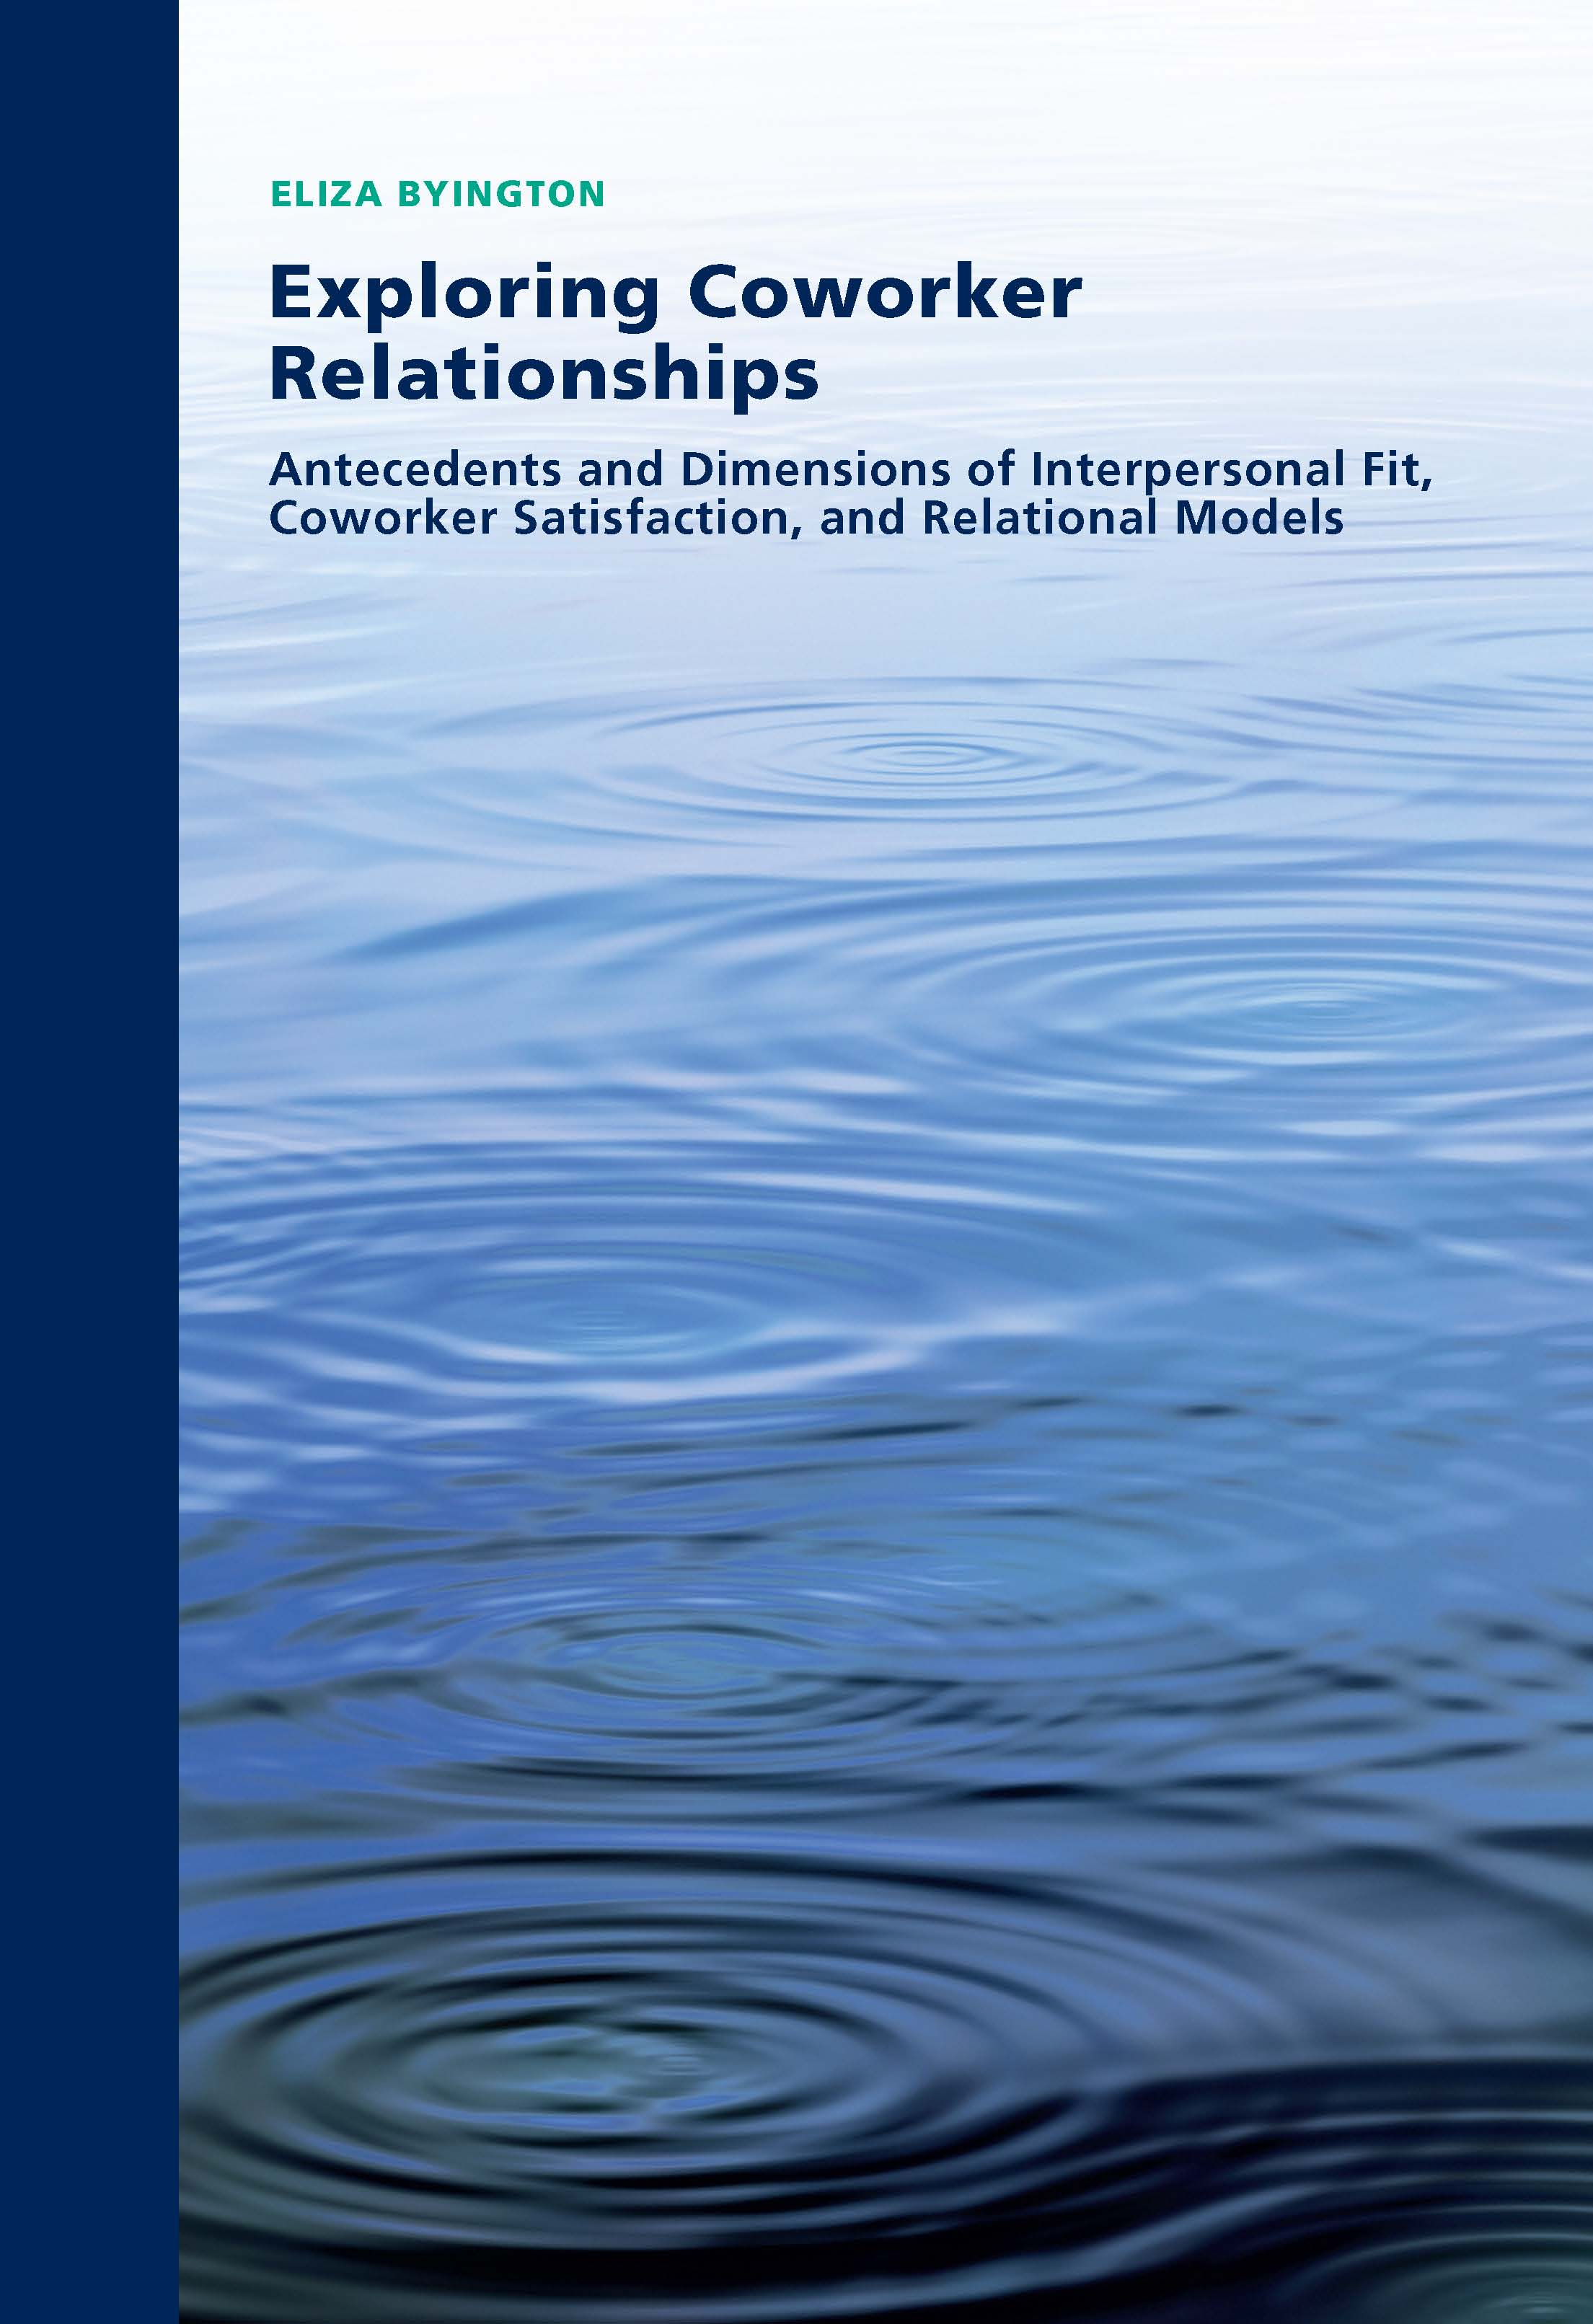 Exploring Coworker Relationships: Antecedents and Dimensions of Interpersonal Fit, Coworker Satisfaction, and Relational Models